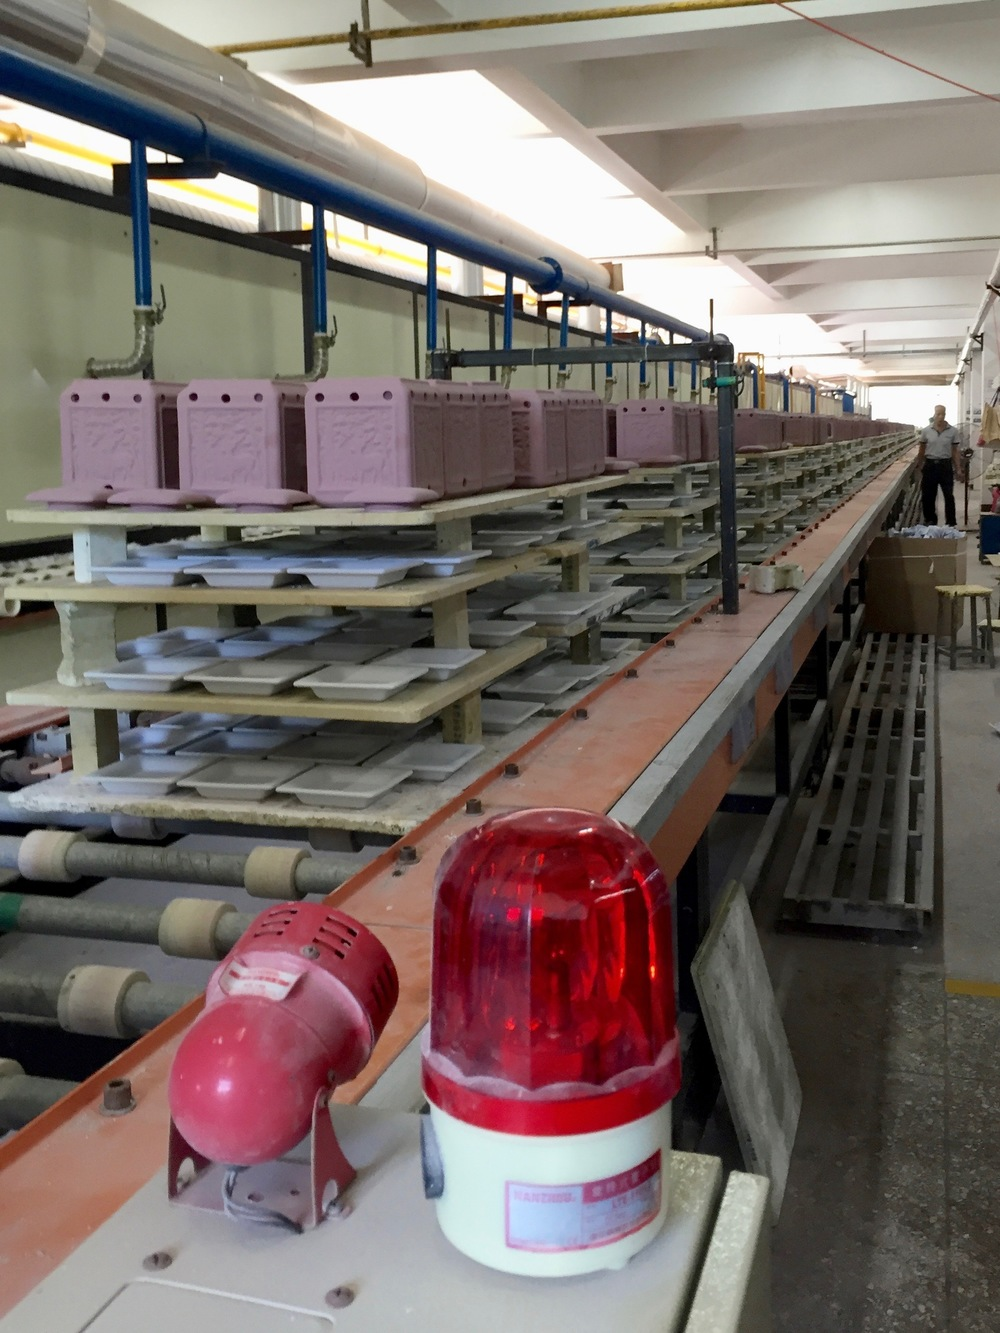 This is a computerized kiln that is continuously moving. It takes about 8 hours for one piece to move through the entire kiln. What you see here is a long conveyer belt where ceramic items are stacked onto the shelves. The shelves move on this conveyer to the end, they make a u-turn, and then enter the kiln.